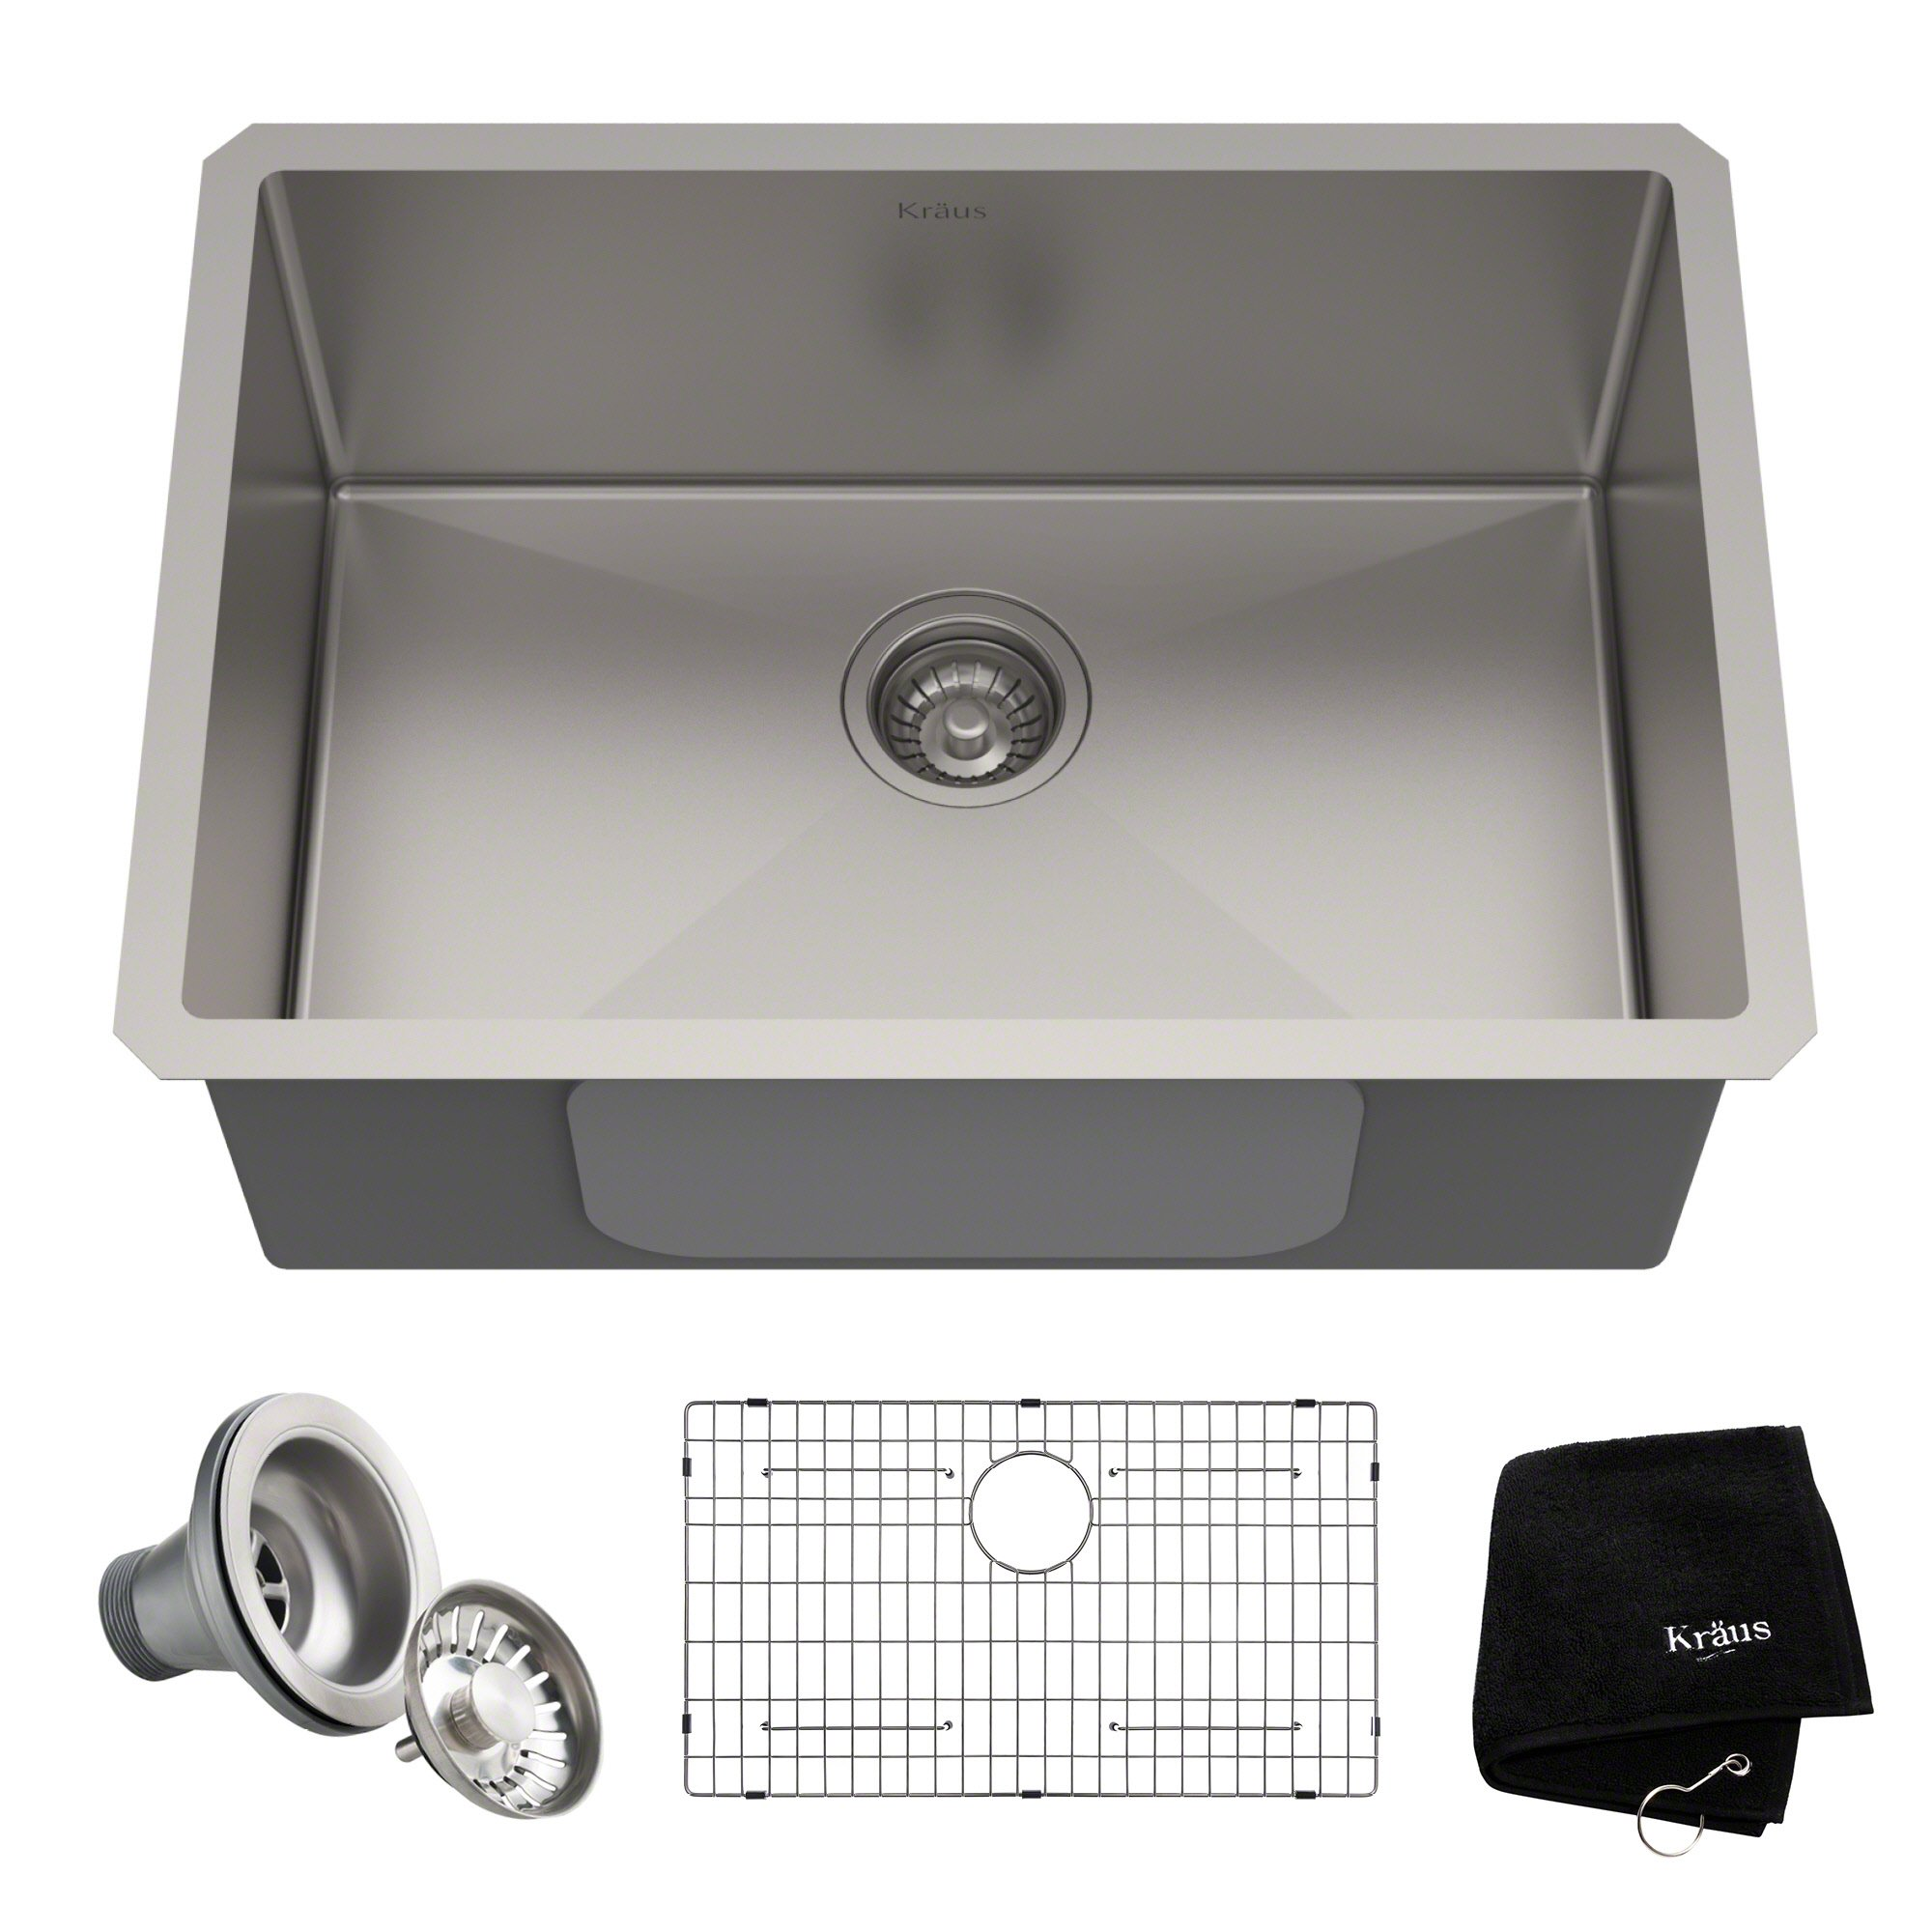 standard kitchen sink sizes amazon com rh amazon com standard kitchen sink sizes australia kitchen sink cabinet standard size